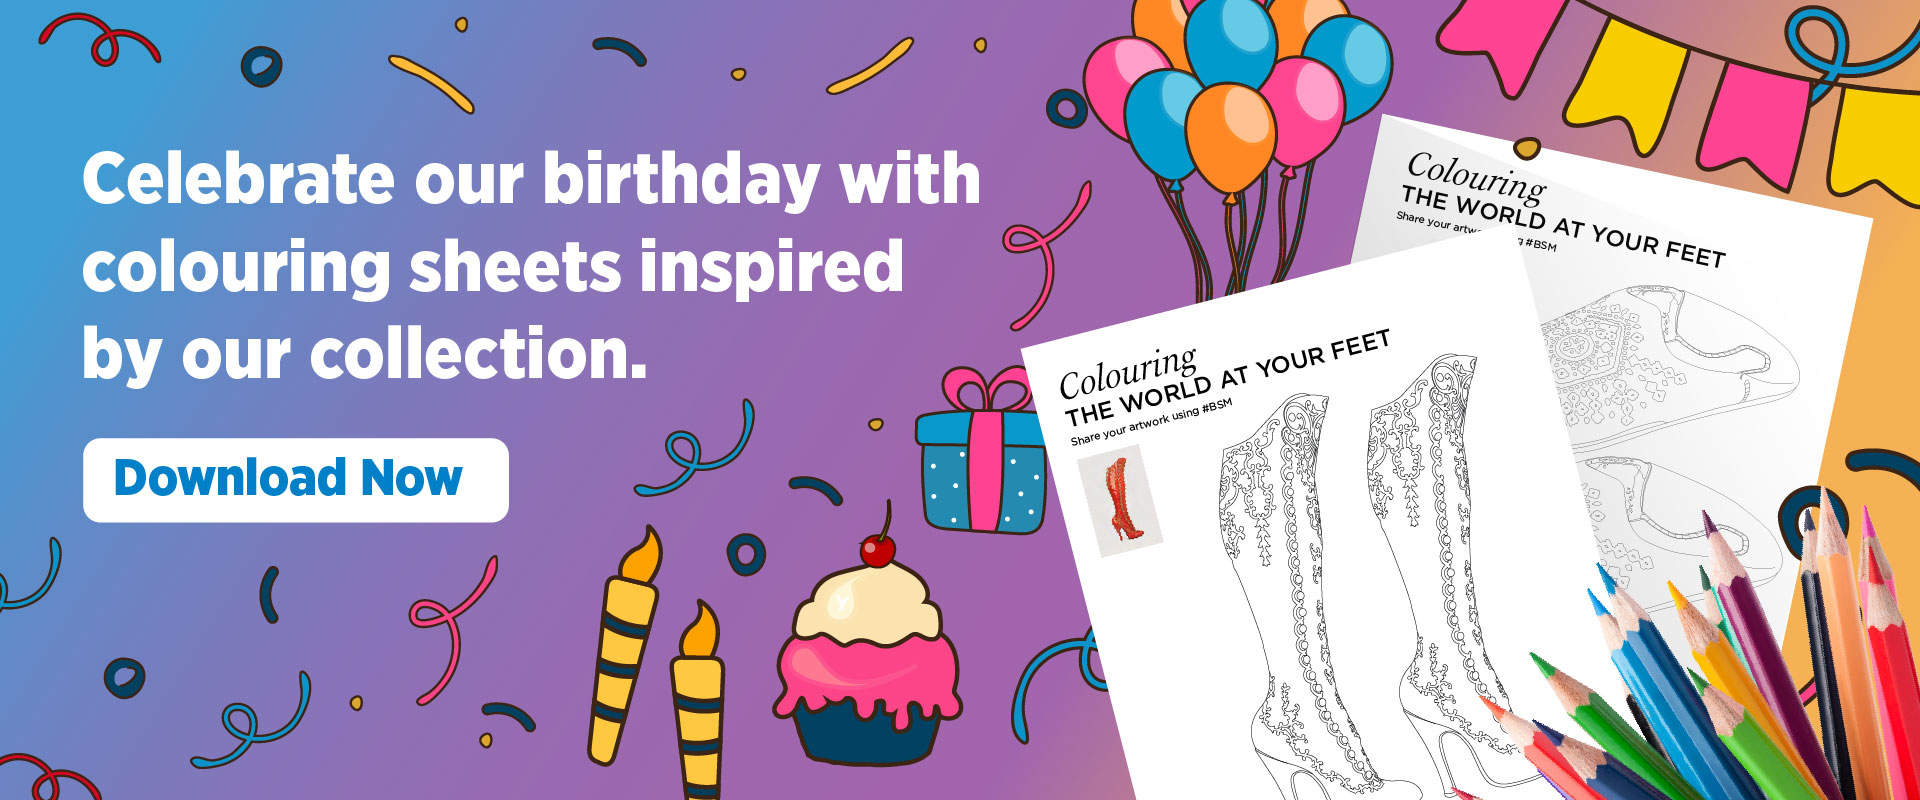 Celebrate our birthday with colouring sheets